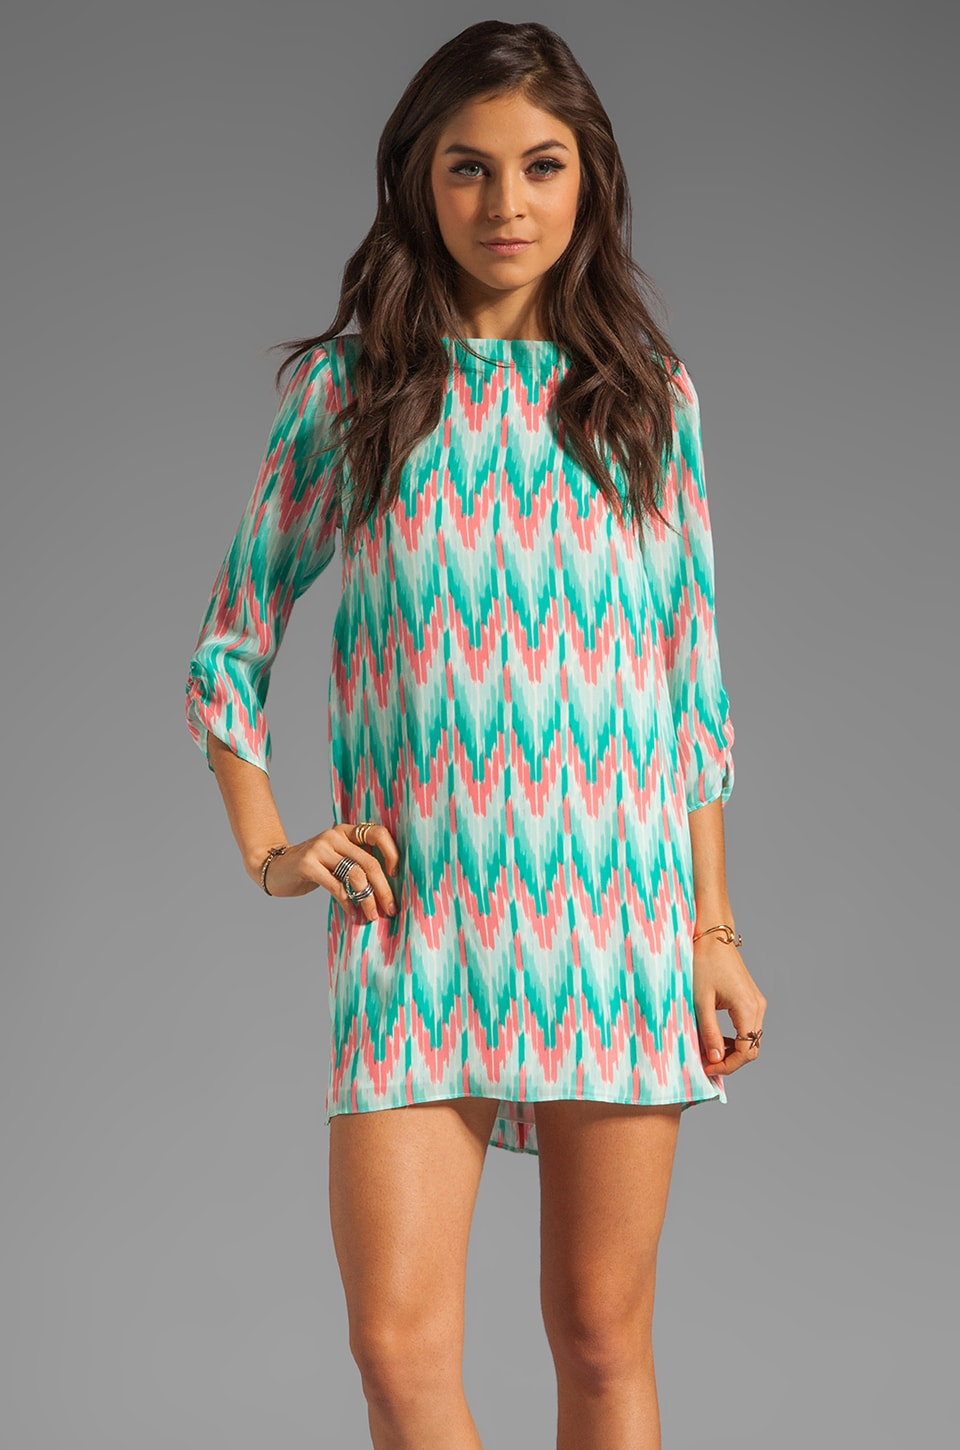 Shoshanna Tara Dress in Cascade Ikat